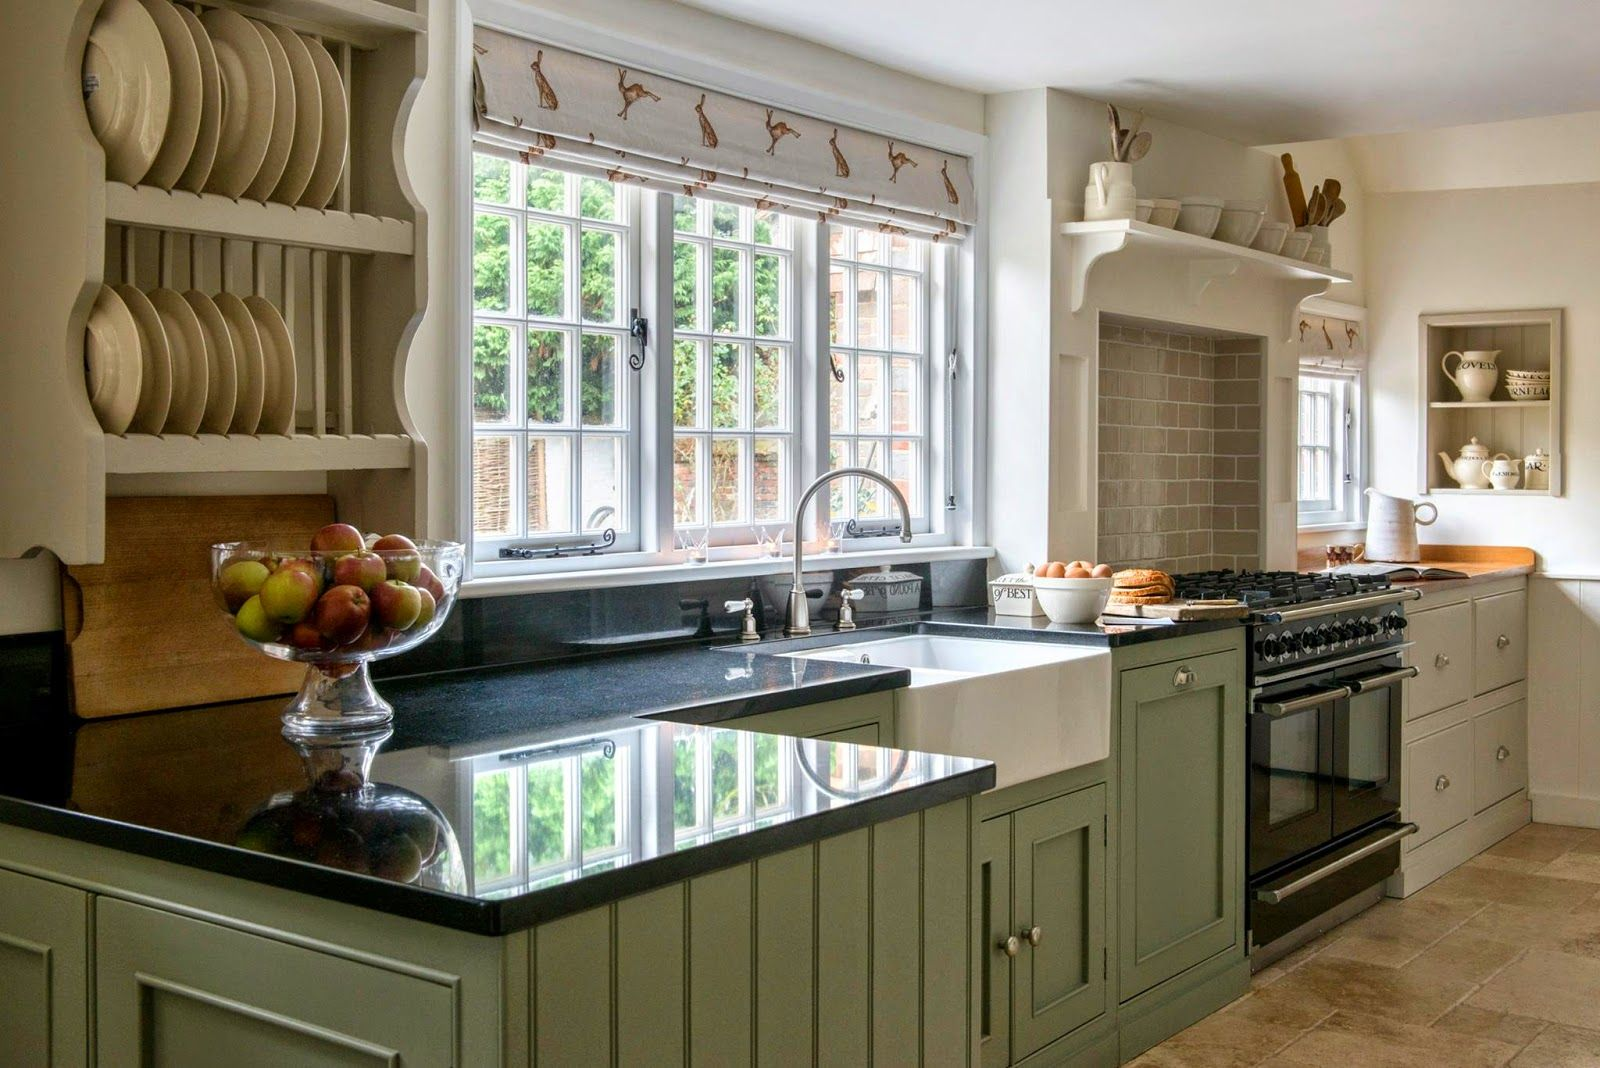 Modern Country Kitchen and Colour Scheme Country chic